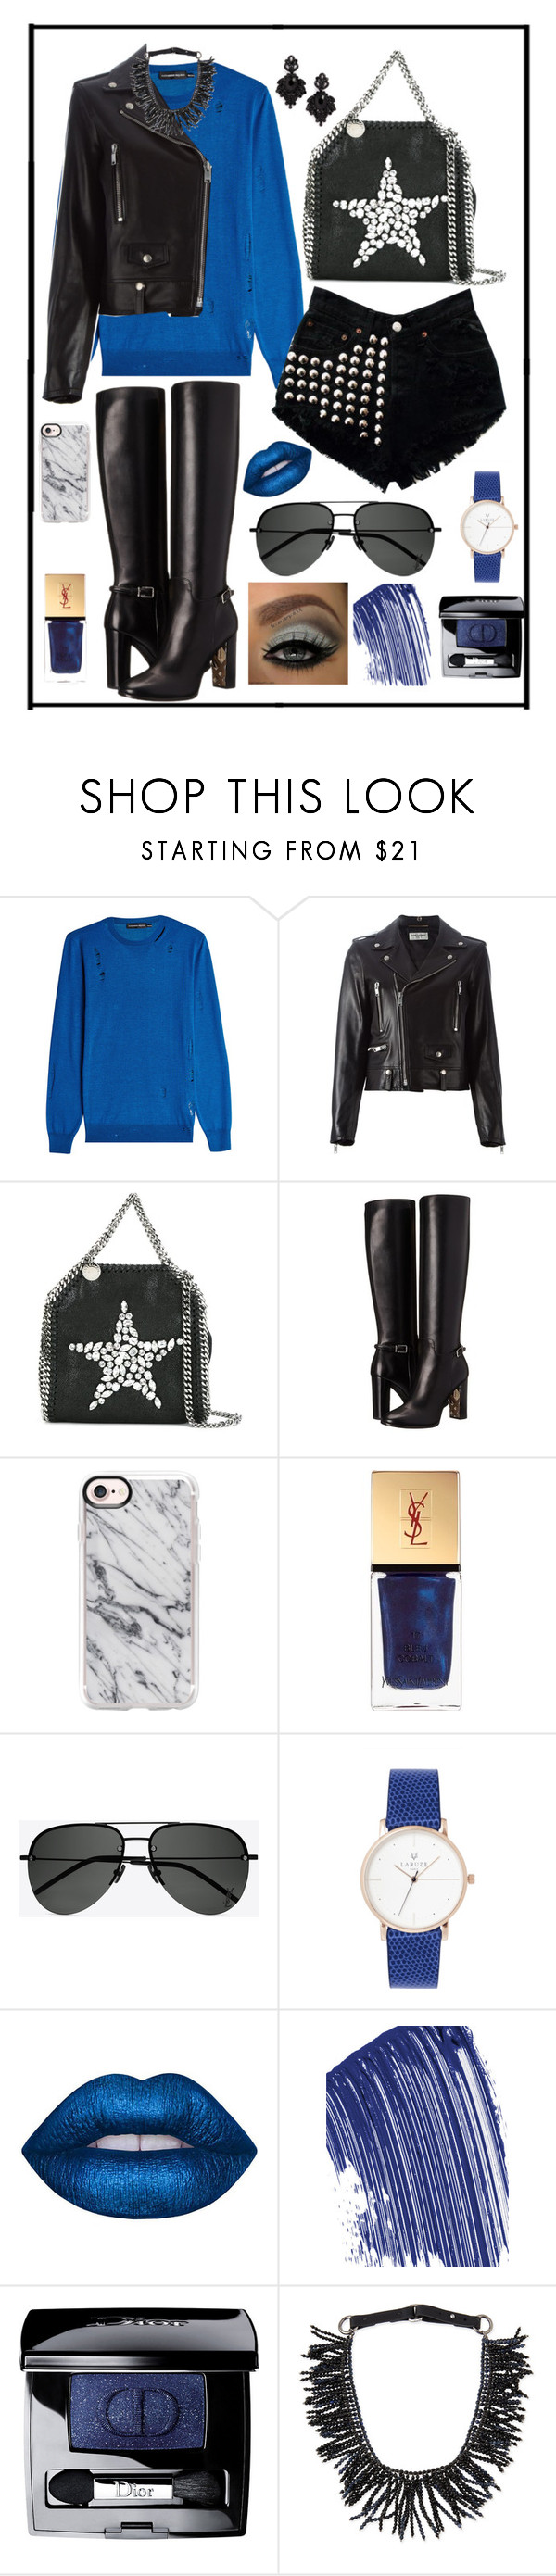 """""""Untitled #559"""" by rockinstyles ❤ liked on Polyvore featuring Alexander McQueen, Yves Saint Laurent, STELLA McCARTNEY, Burberry, Casetify, Lime Crime, Chanel, Christian Dior, Brunello Cucinelli and Tasha"""